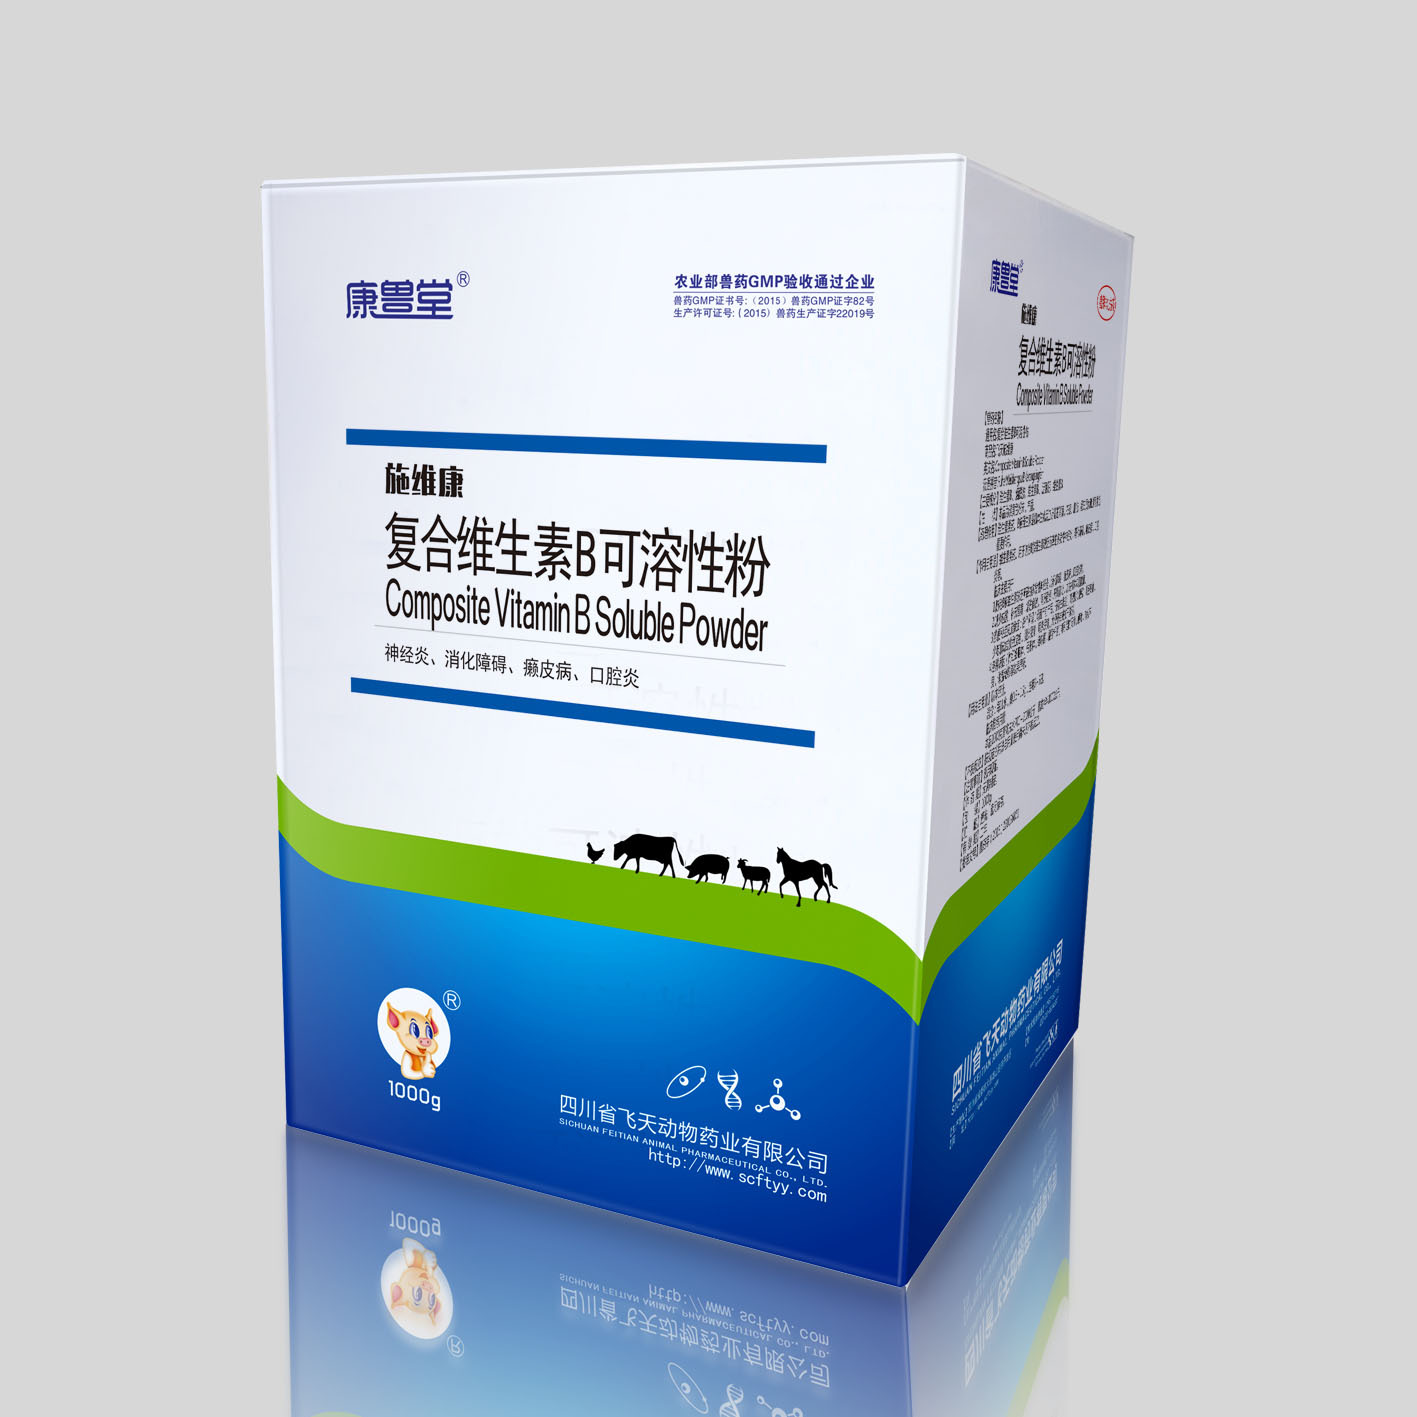 Composite Vitamin B Soluble Powder